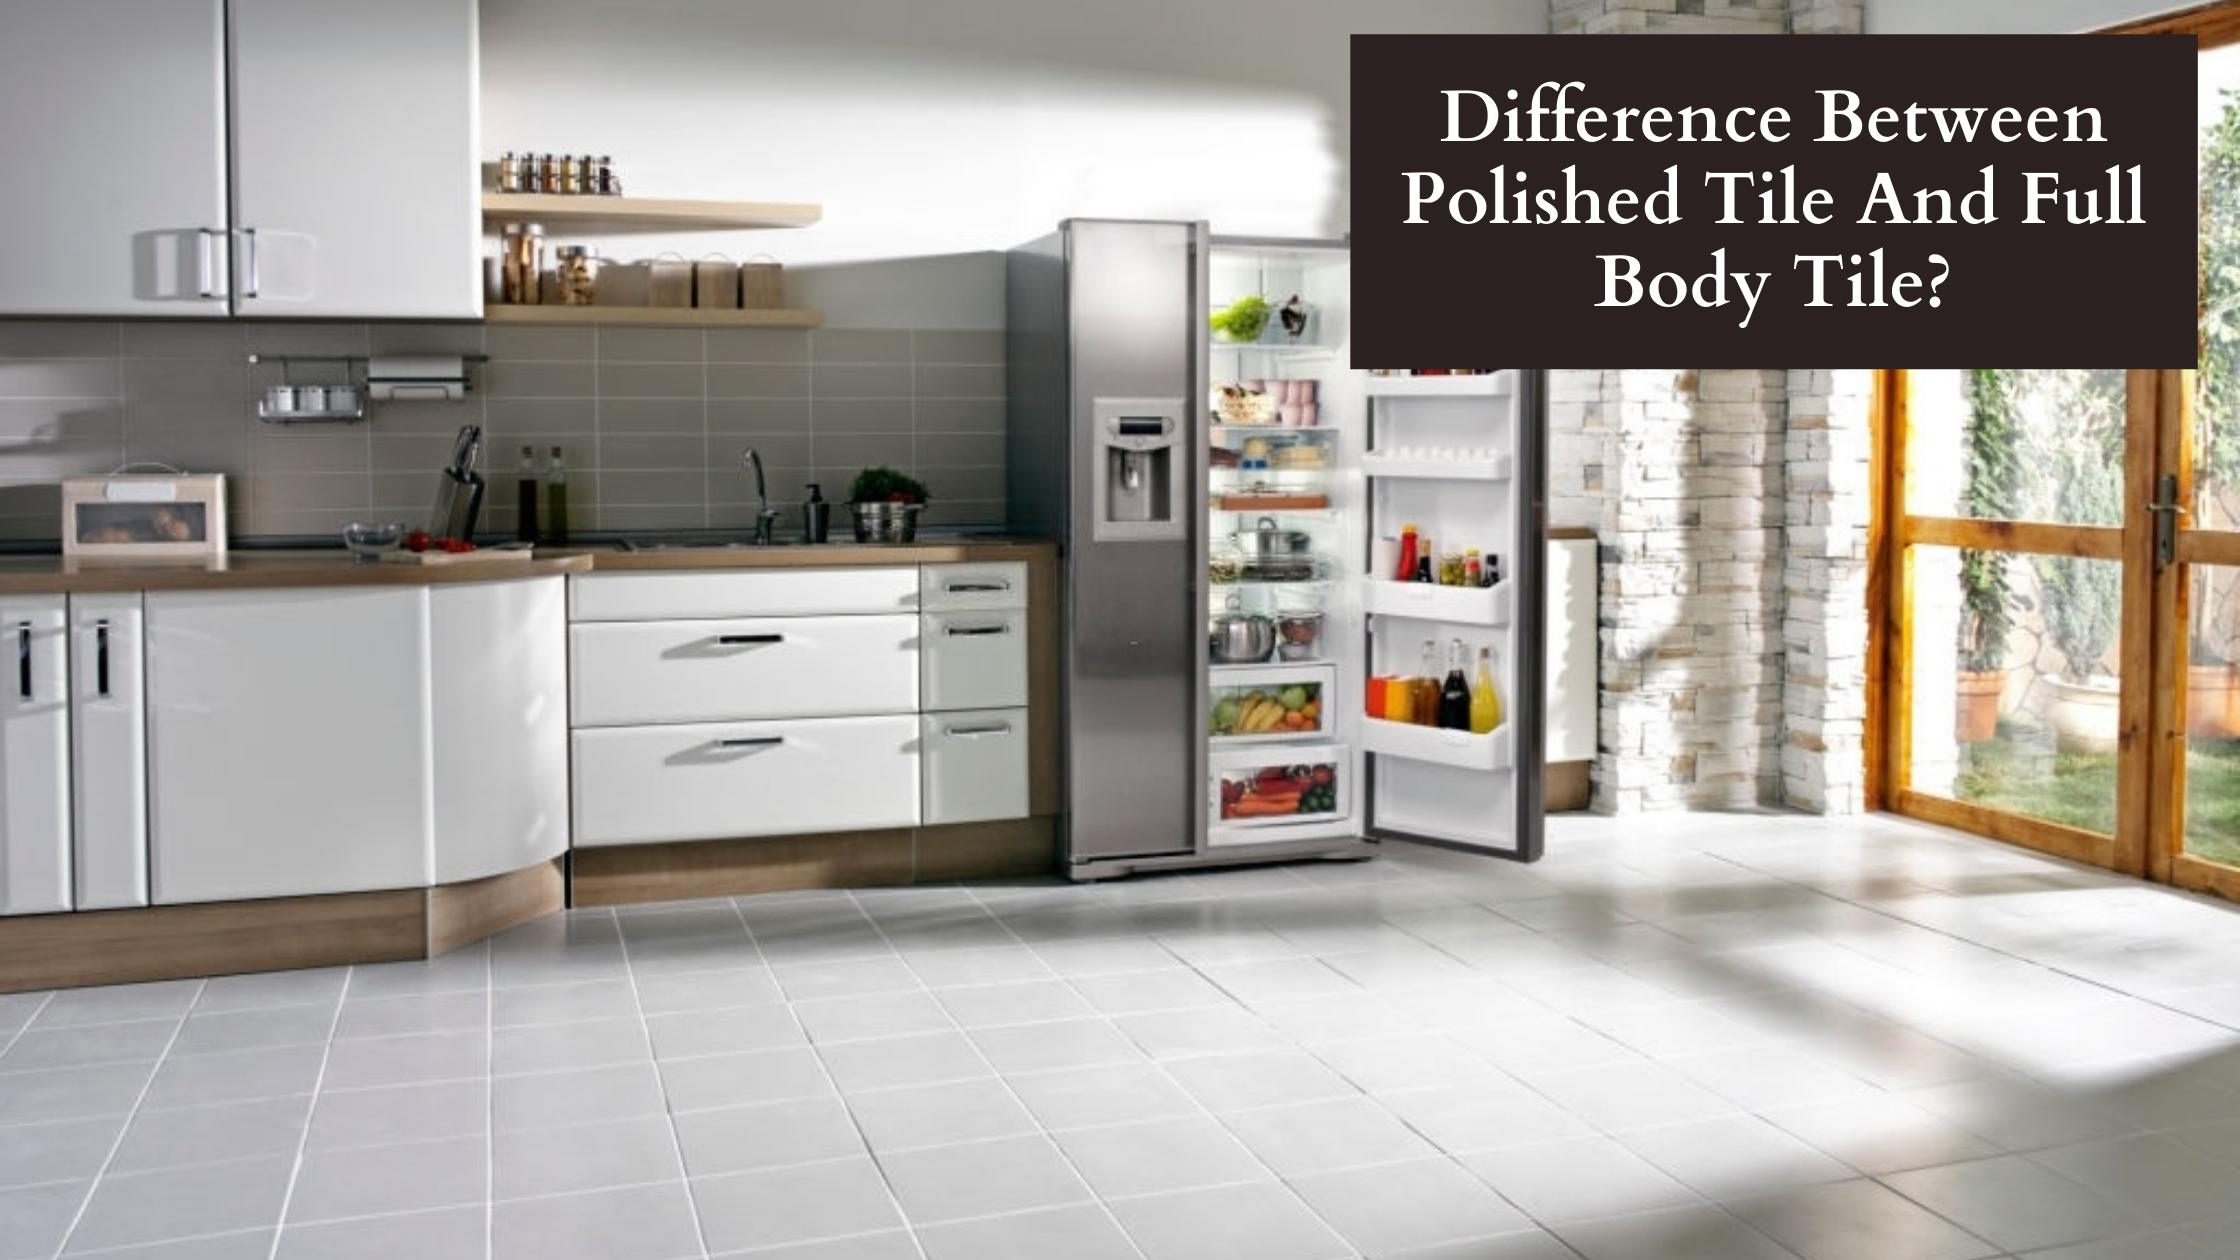 Difference Between Polished Tile And Full Body Tile